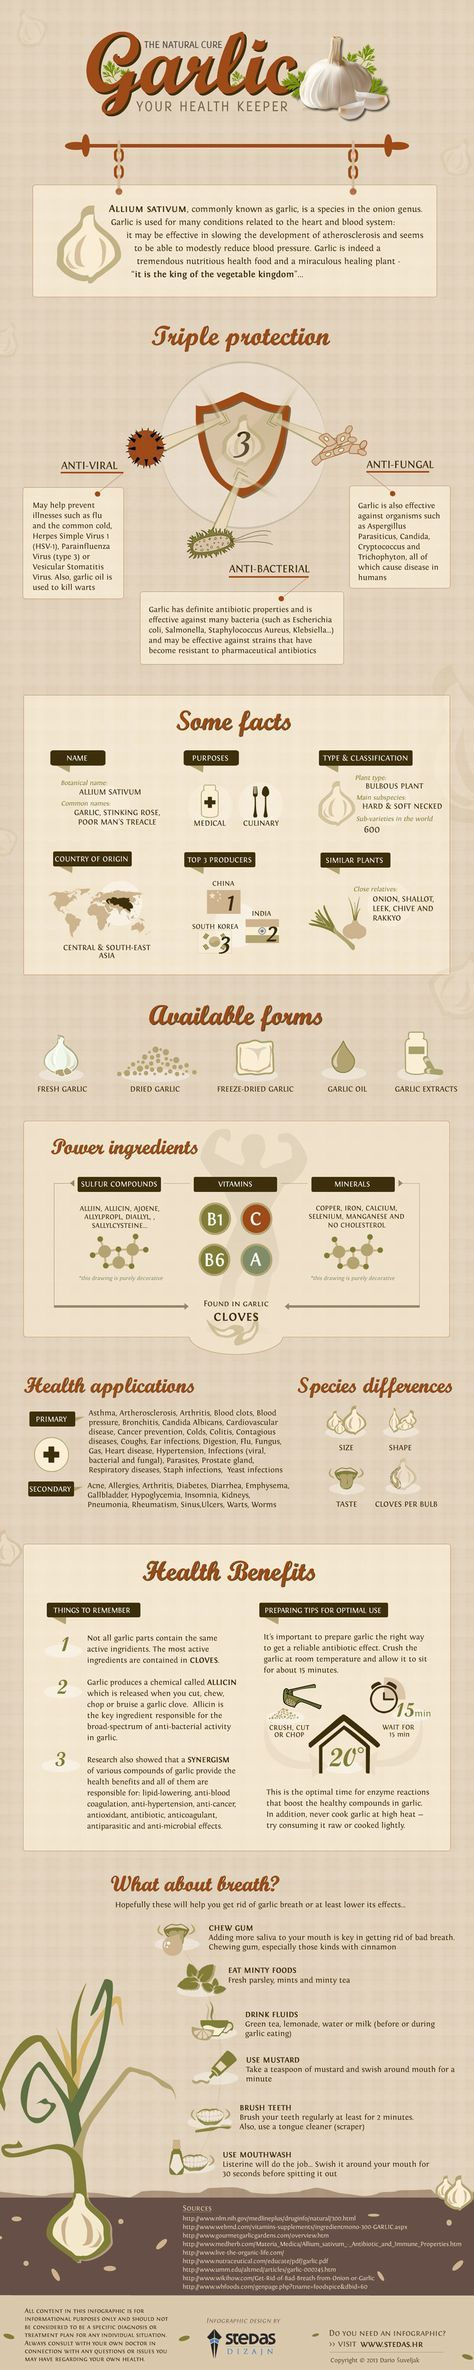 Health Benefits of Garlic...I just read this with SERIOUS garlic breath from dinner ;)